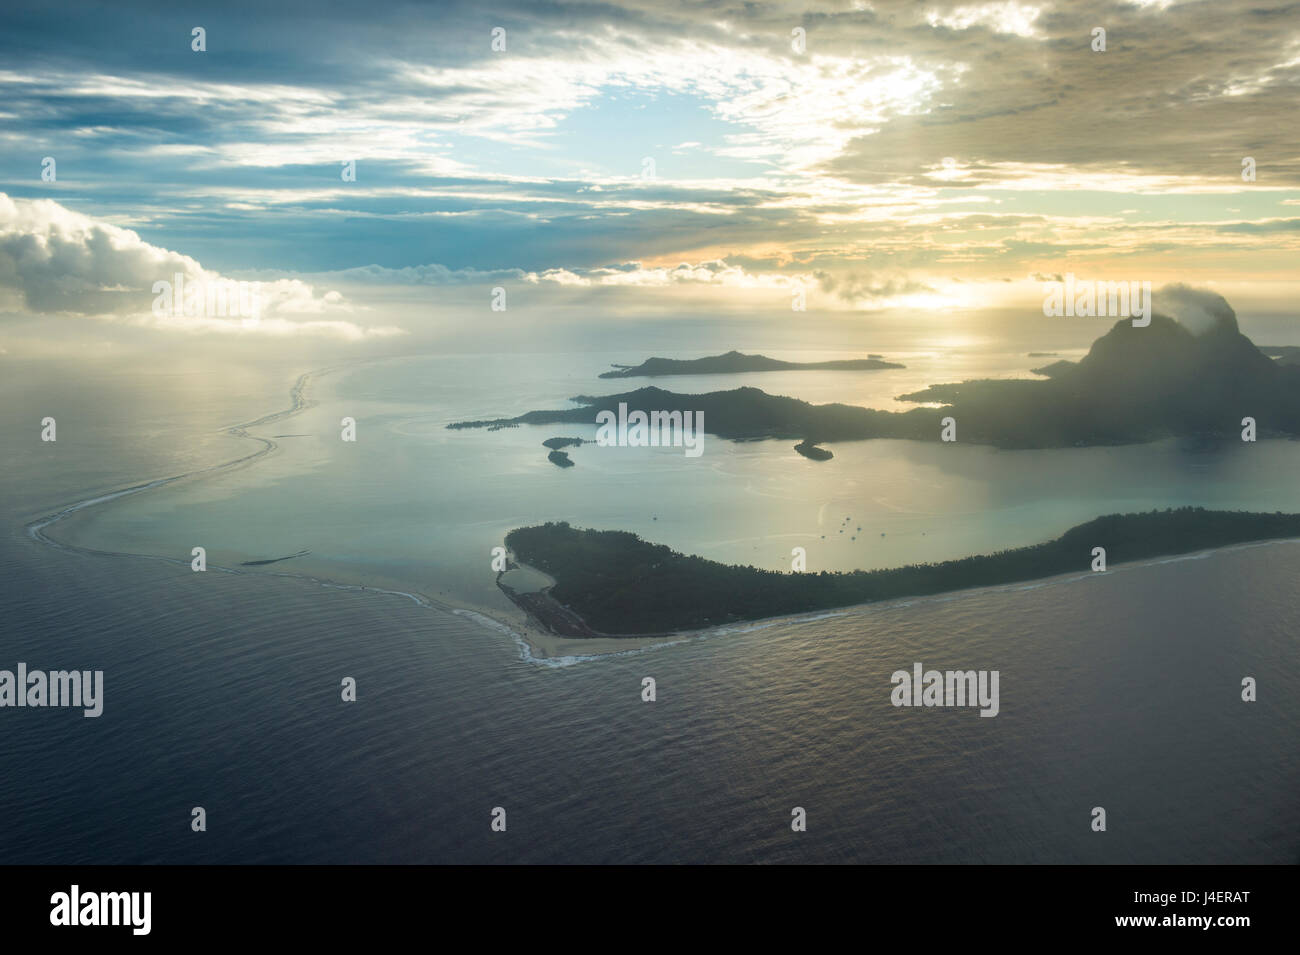 Aerial of Bora Bora, Society Islands, French Polynesia, Pacific - Stock Image